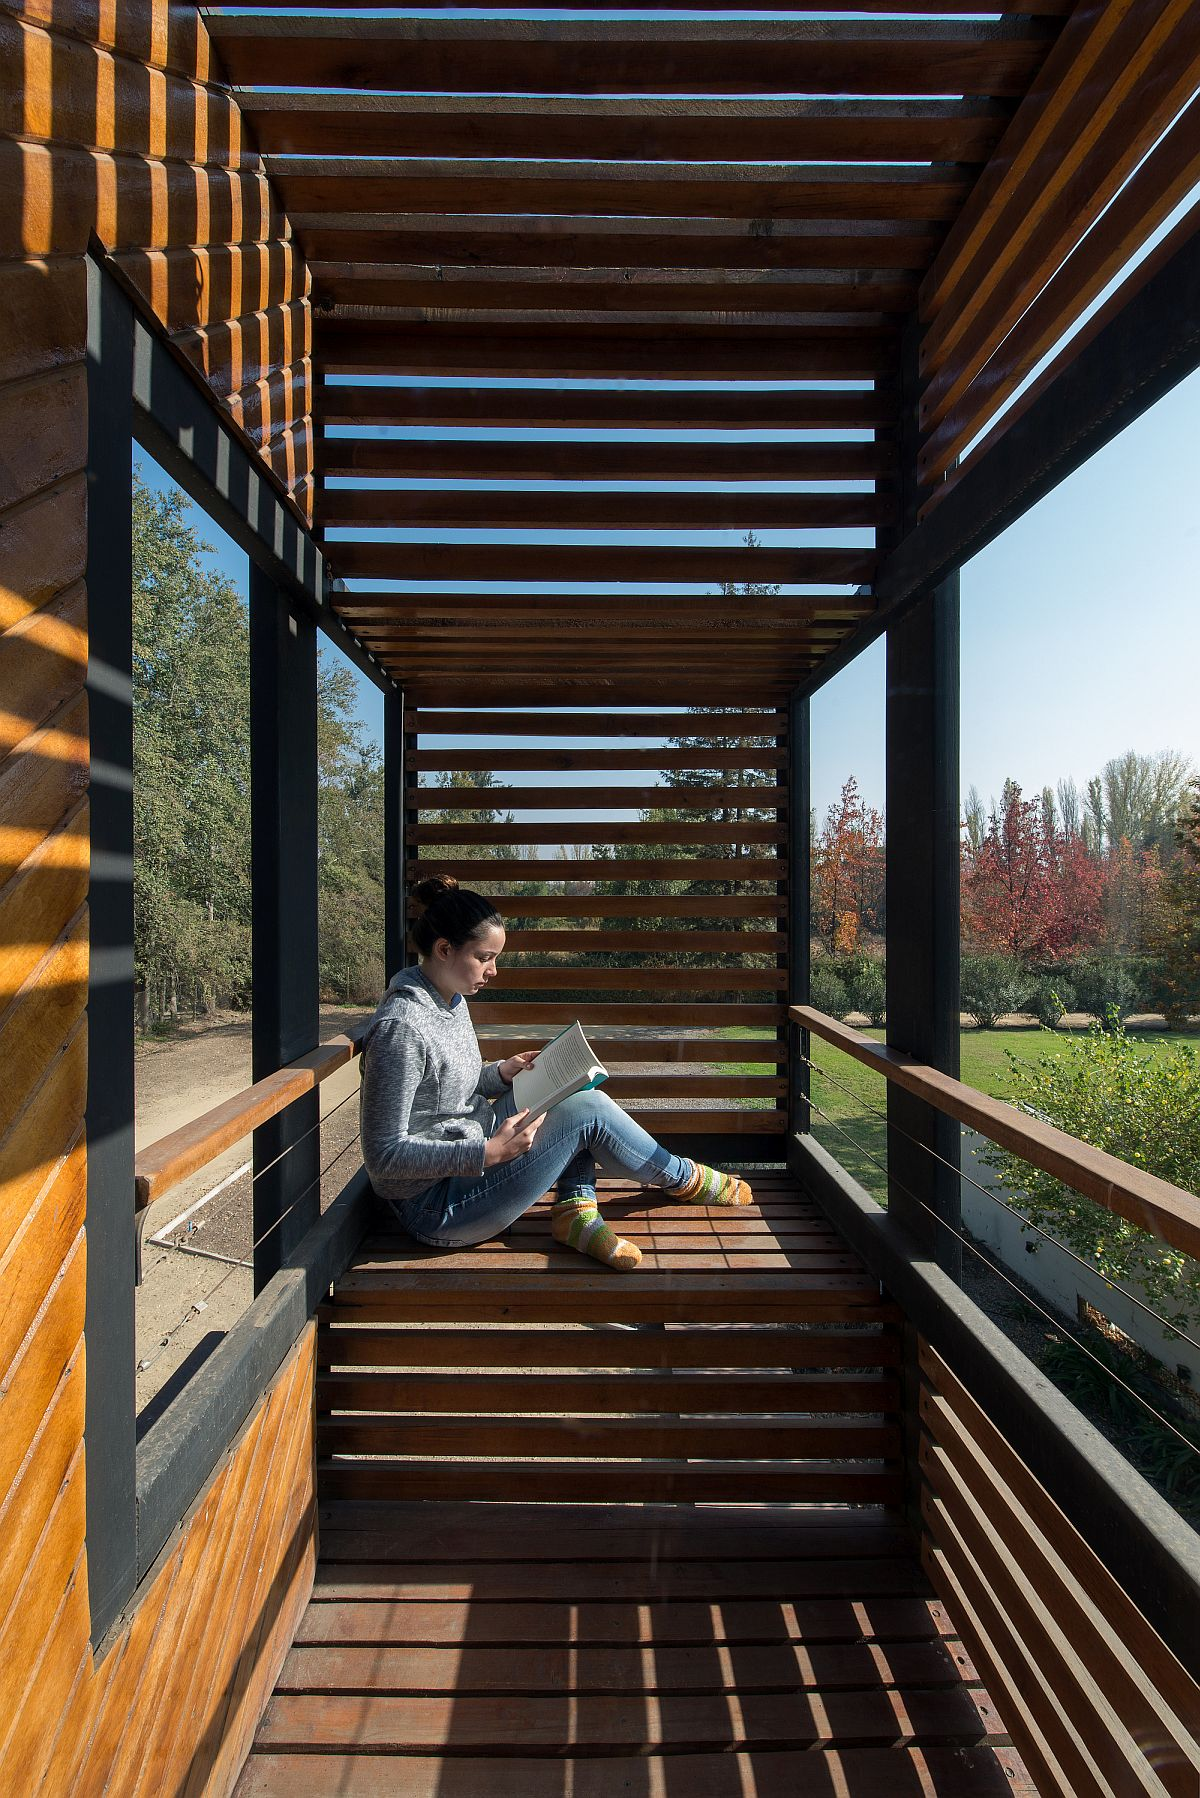 Wooden slat offer the perfect shelter from sunlight even as the home offers stunning views of the lovely landscape